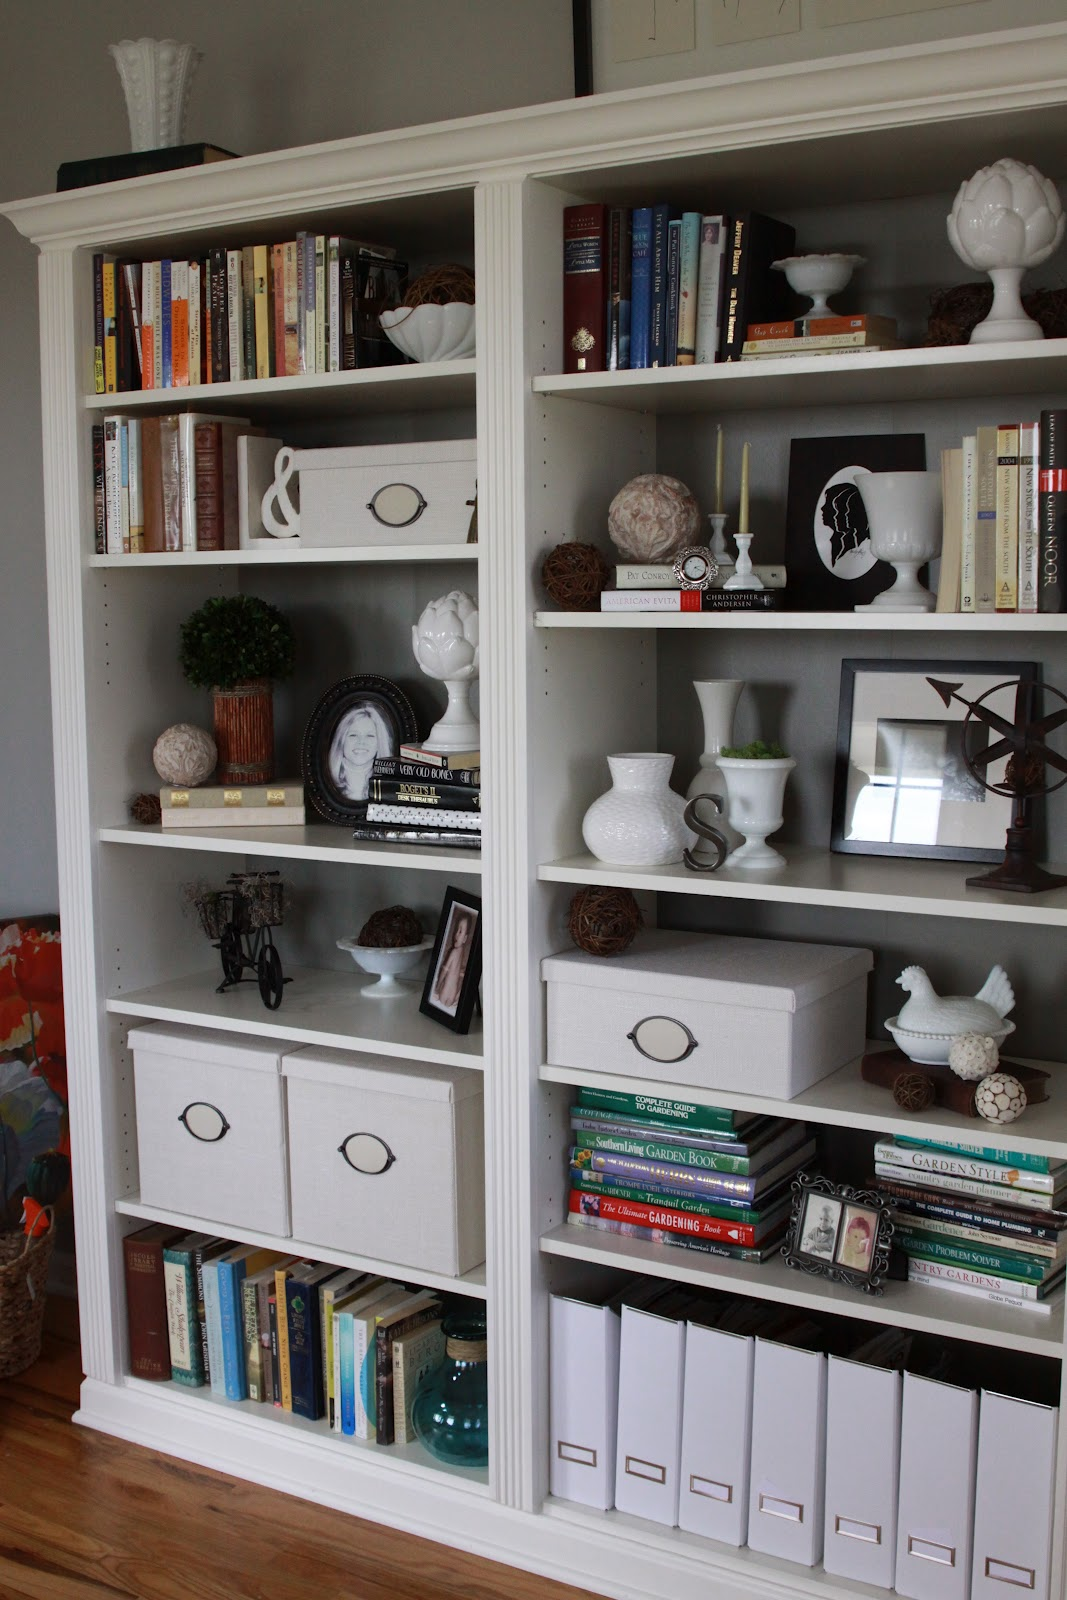 Ikea Hack Bookcase: Reinventing Eden: From Ikea Billy Bookcase To Built-in